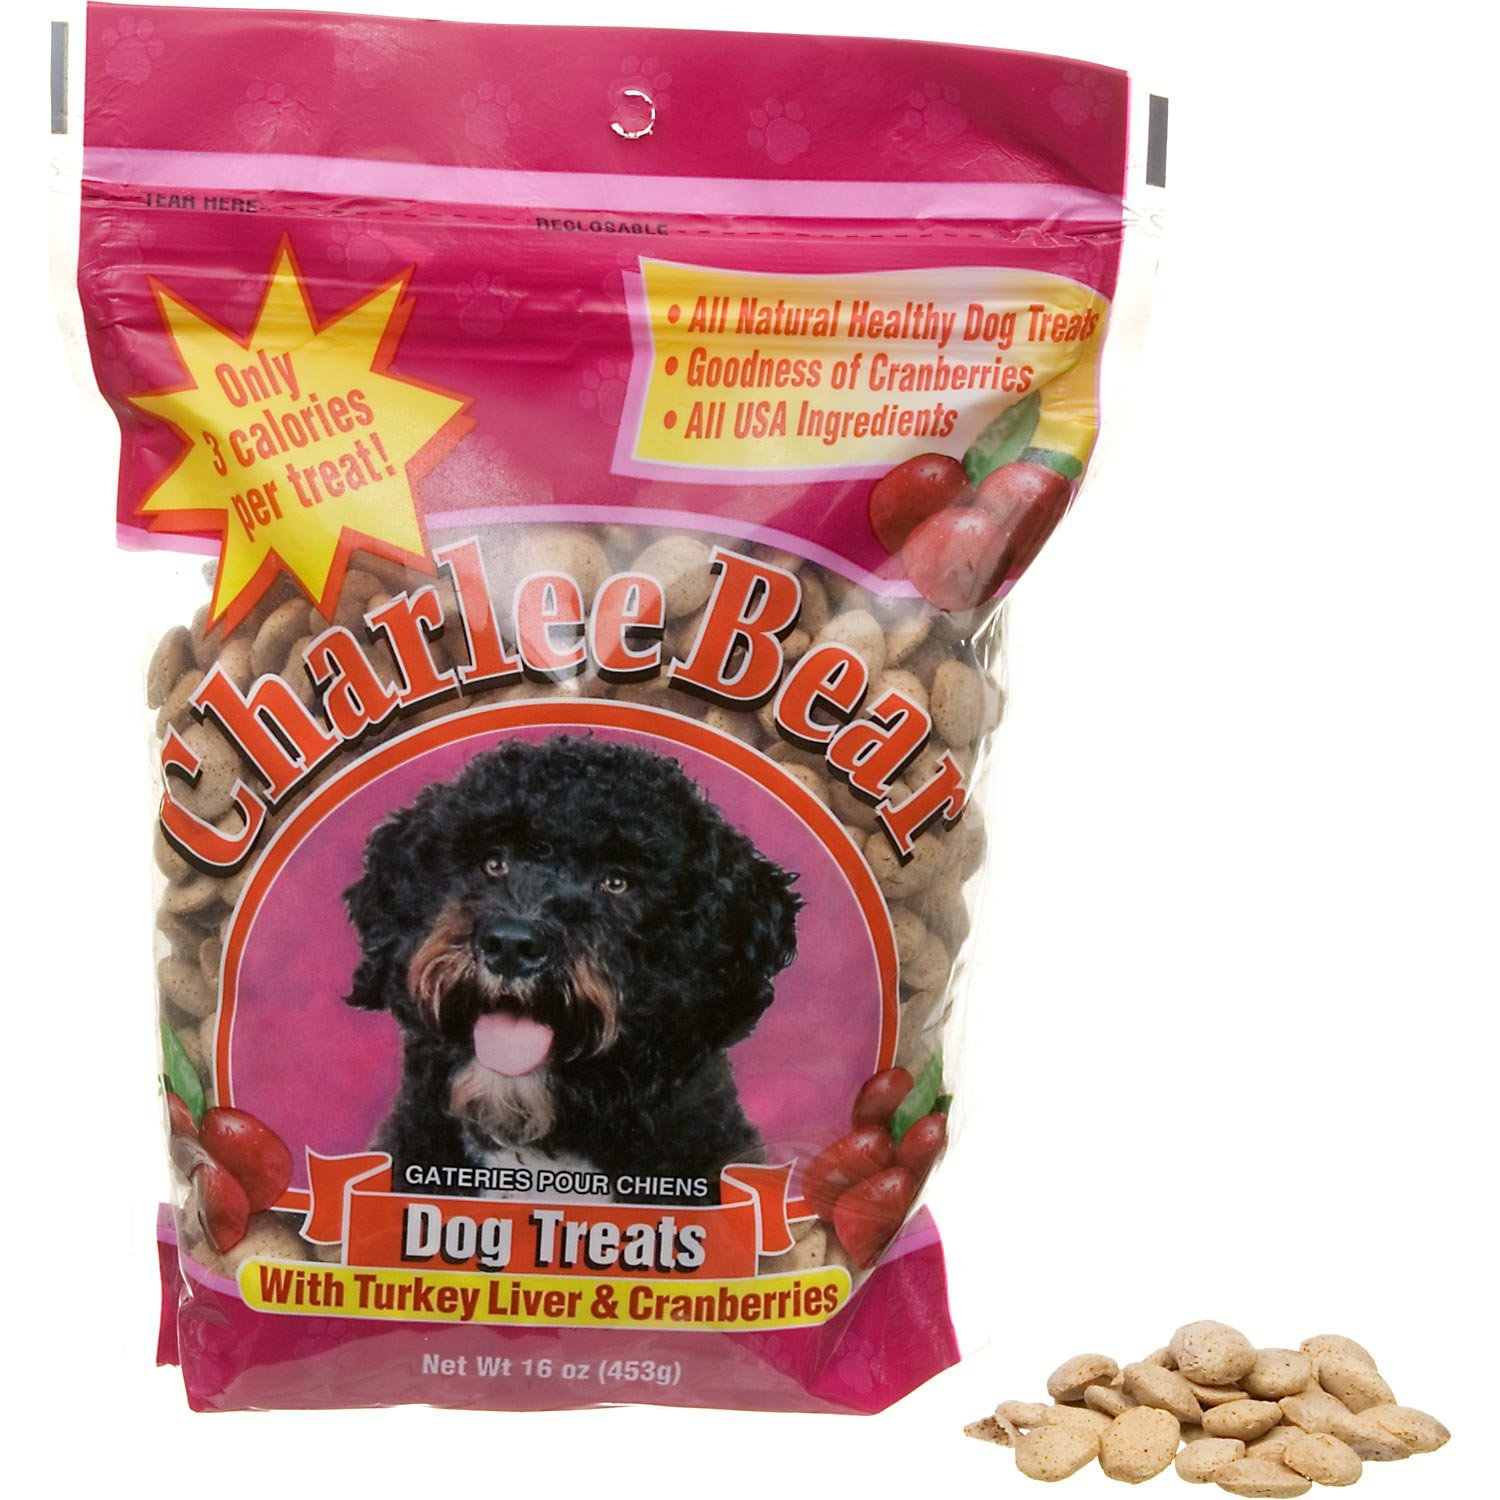 Charlee Bear Turkey Liver & Cranberries Dog Treats, 16-oz